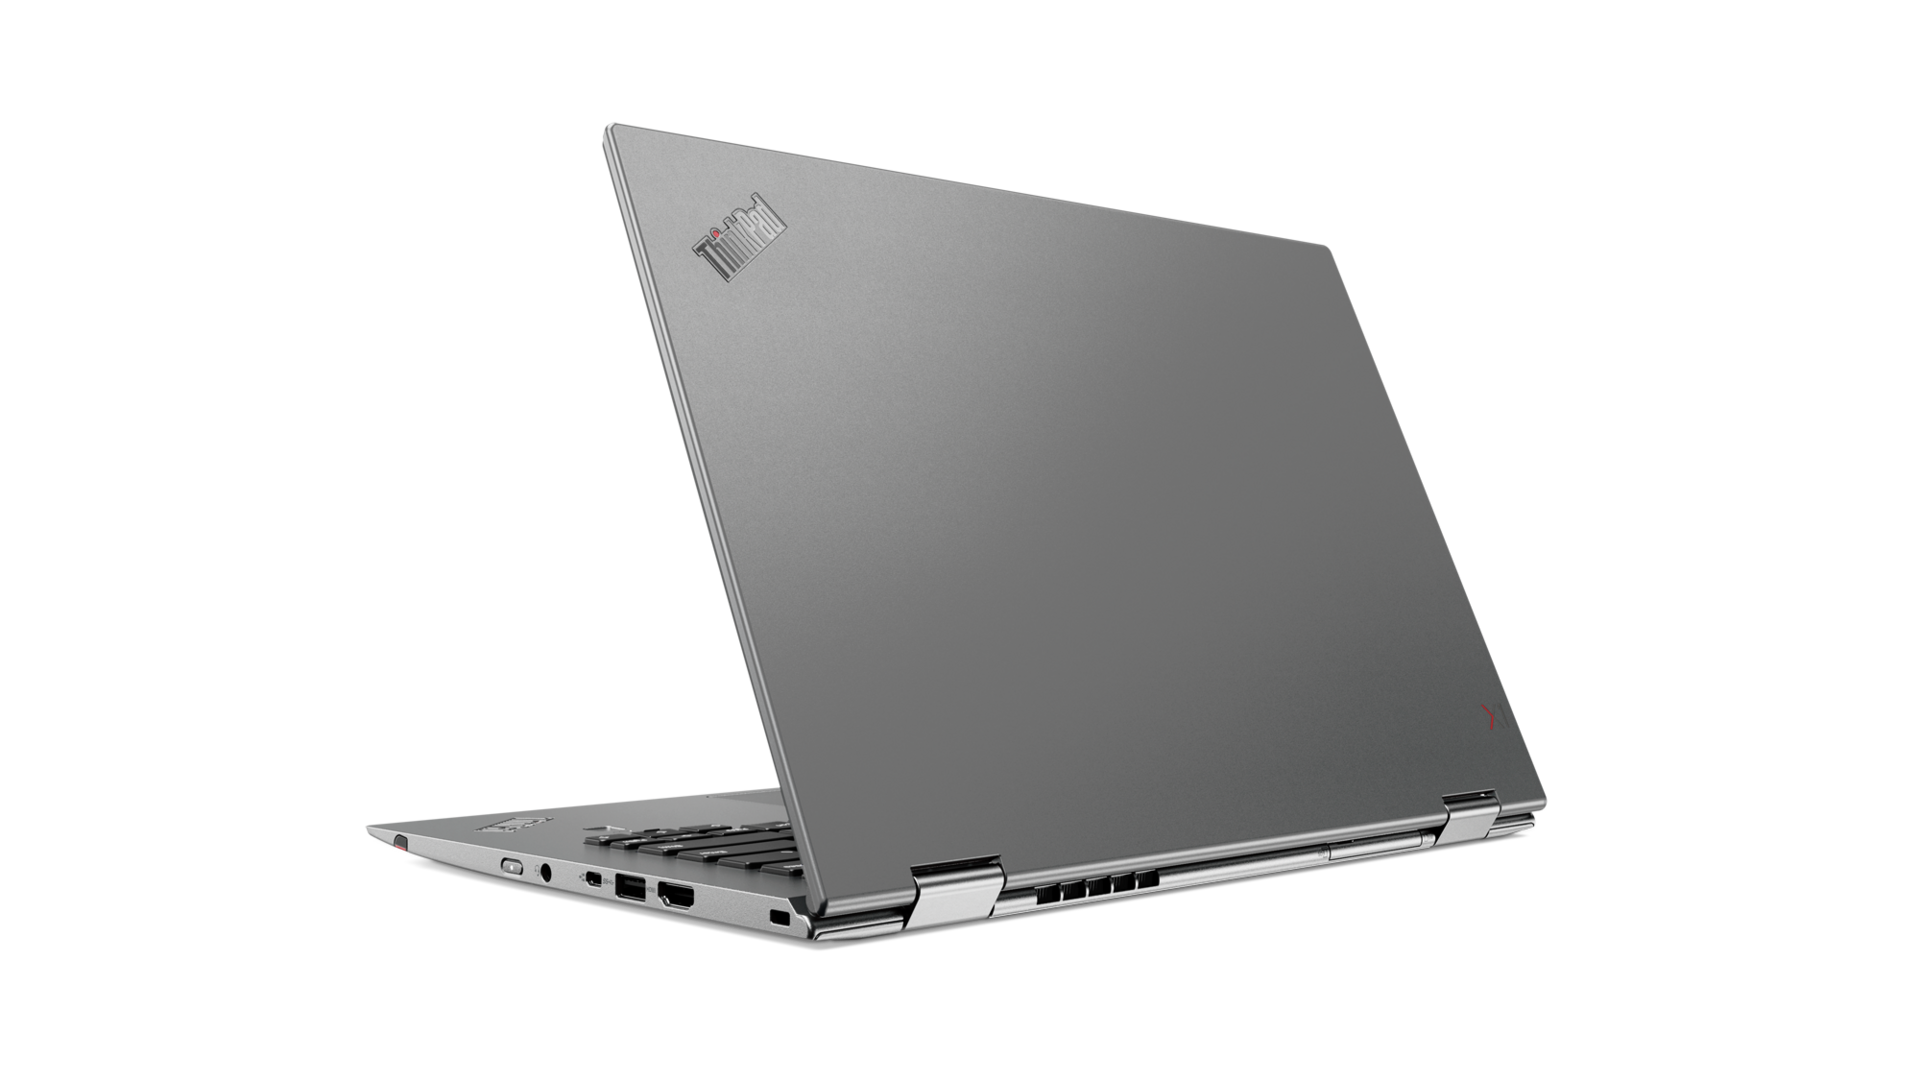 Lenovo ThinkPad X1 Yoga refresh shipping this month for $1900 USD - NotebookCheck.net News